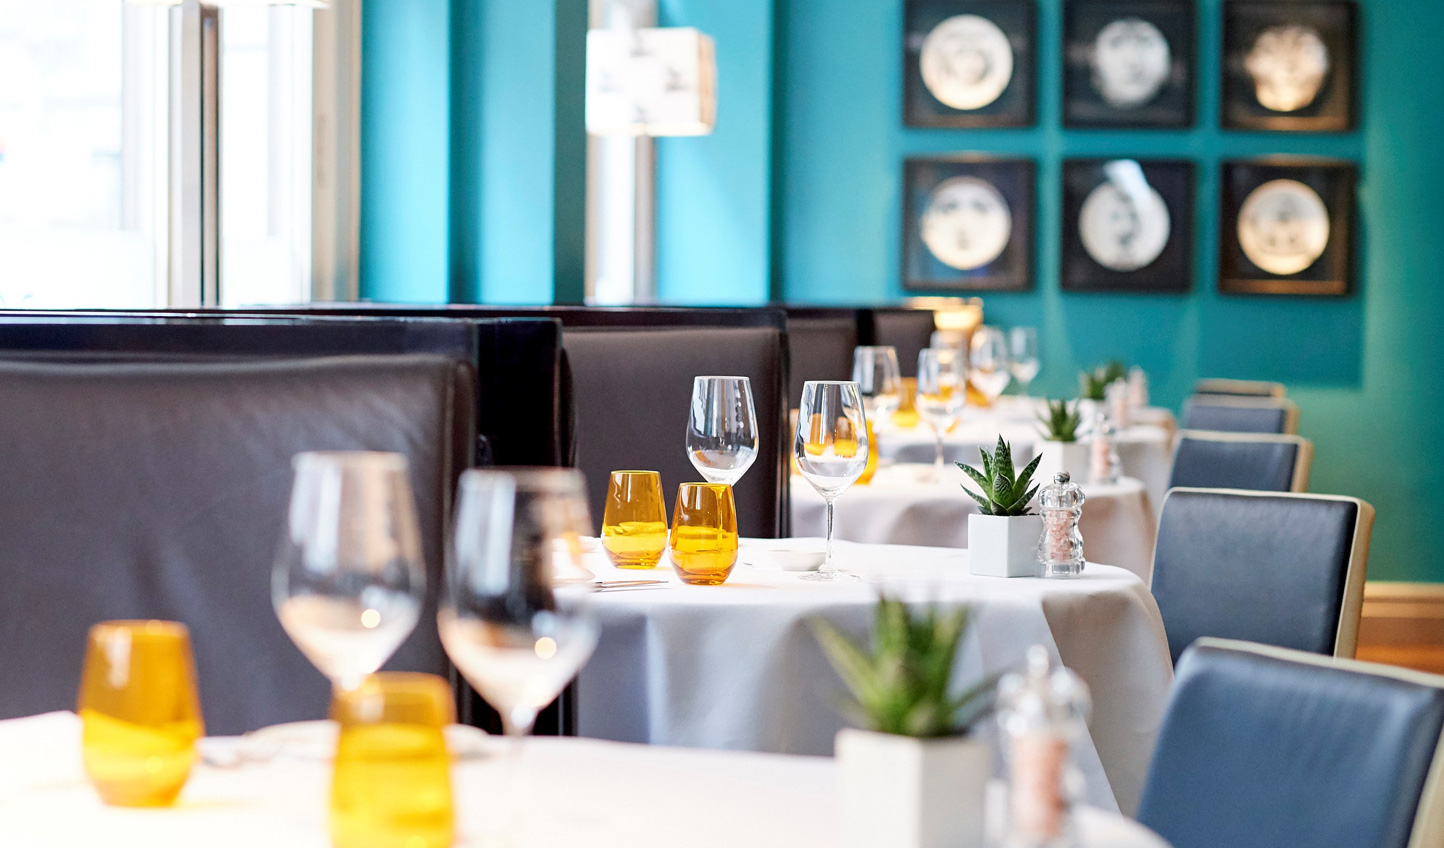 Ristorante Bocconi serves delicious Italian dishes using local Belgian ingredients.